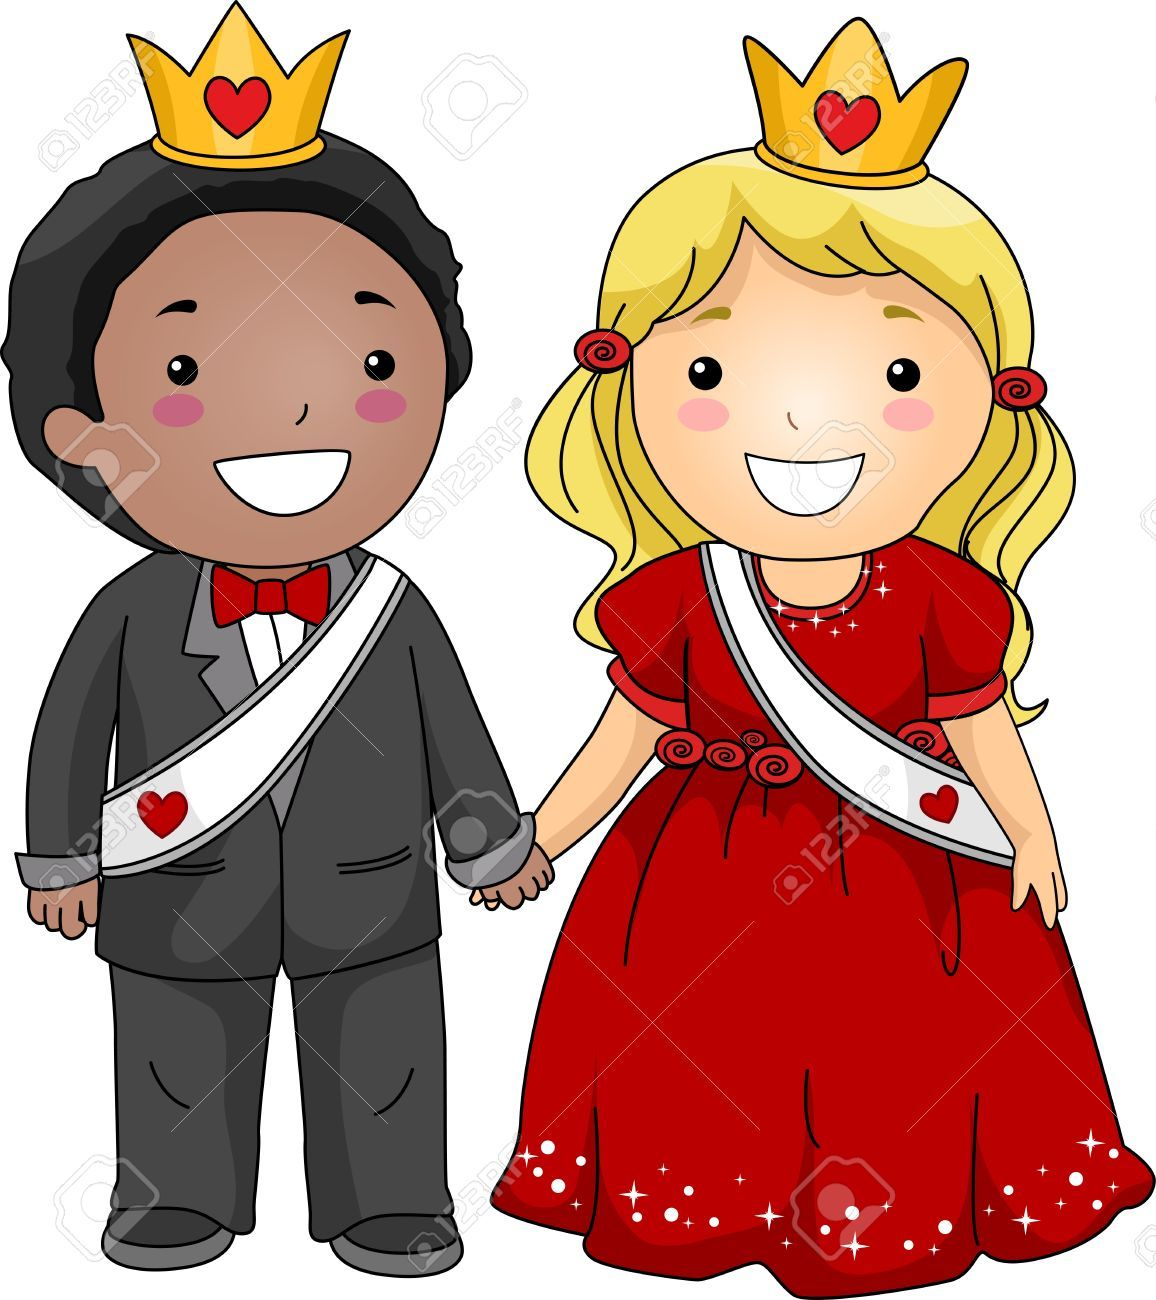 Queen and king clipart 2 » Clipart Portal.